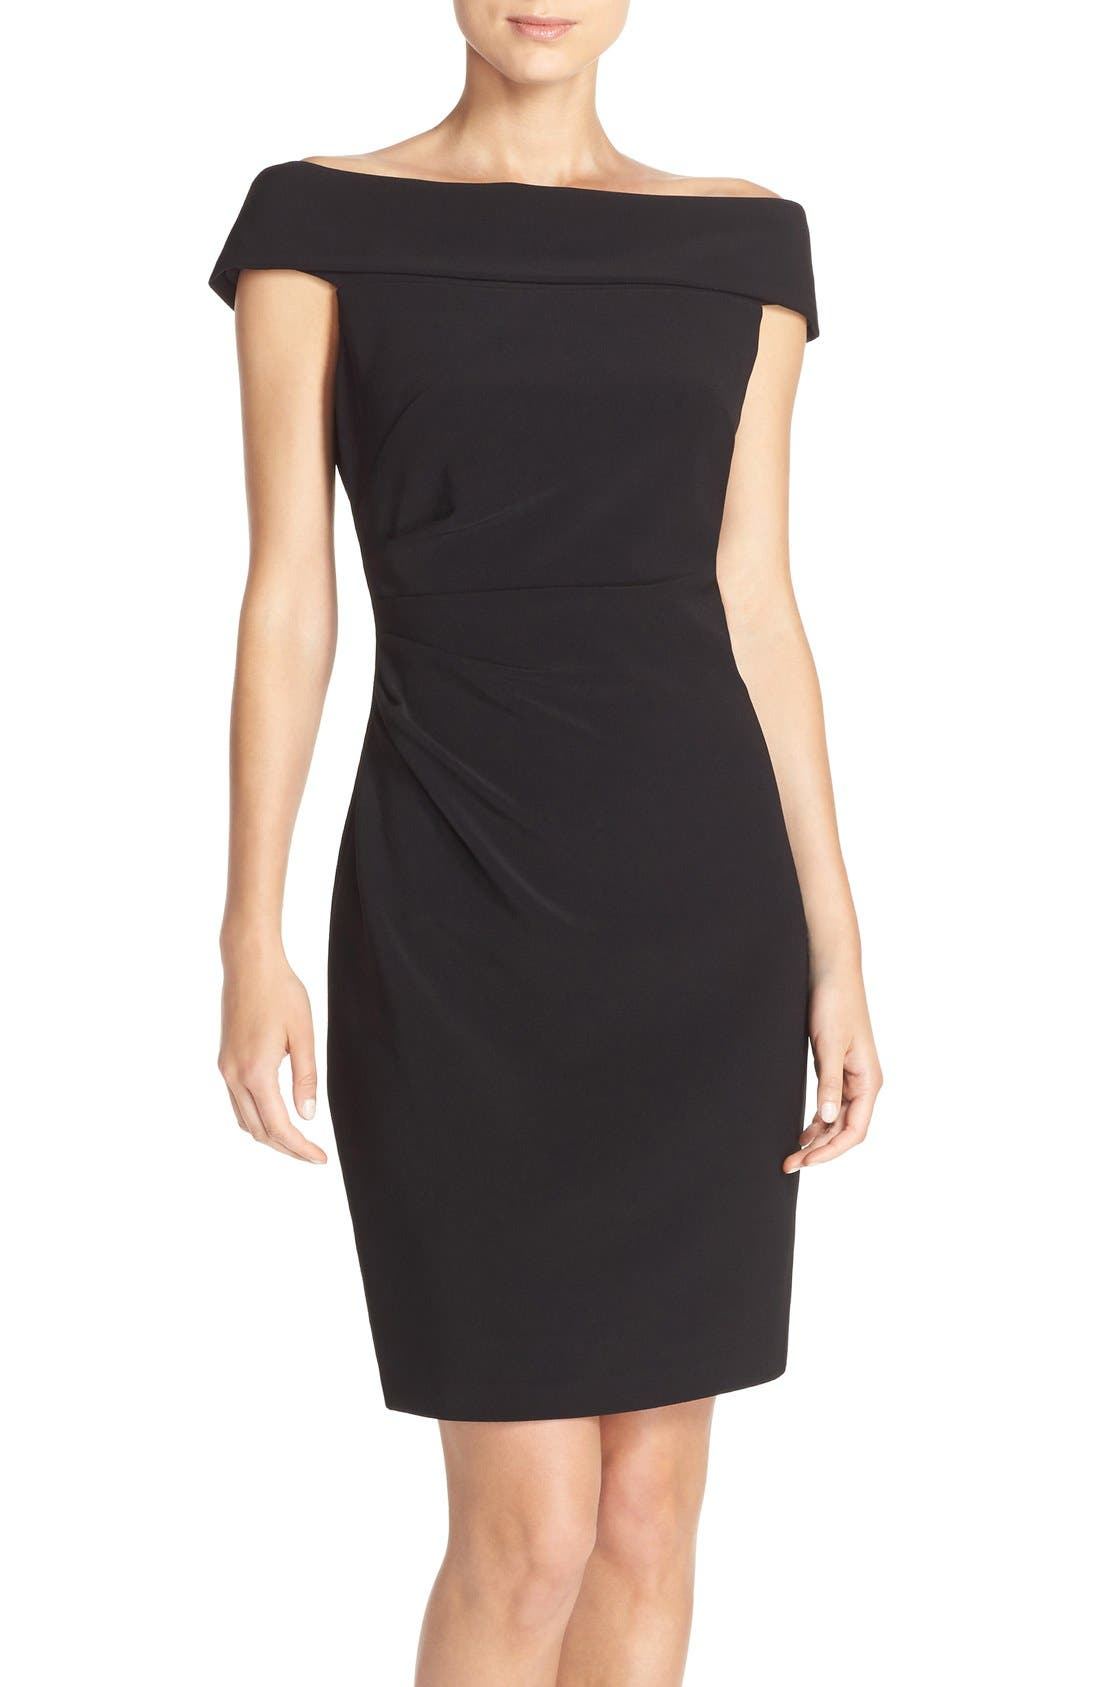 Alternate Image 1 Selected - Vince Camuto Off the Shoulder Crepe Sheath Dress